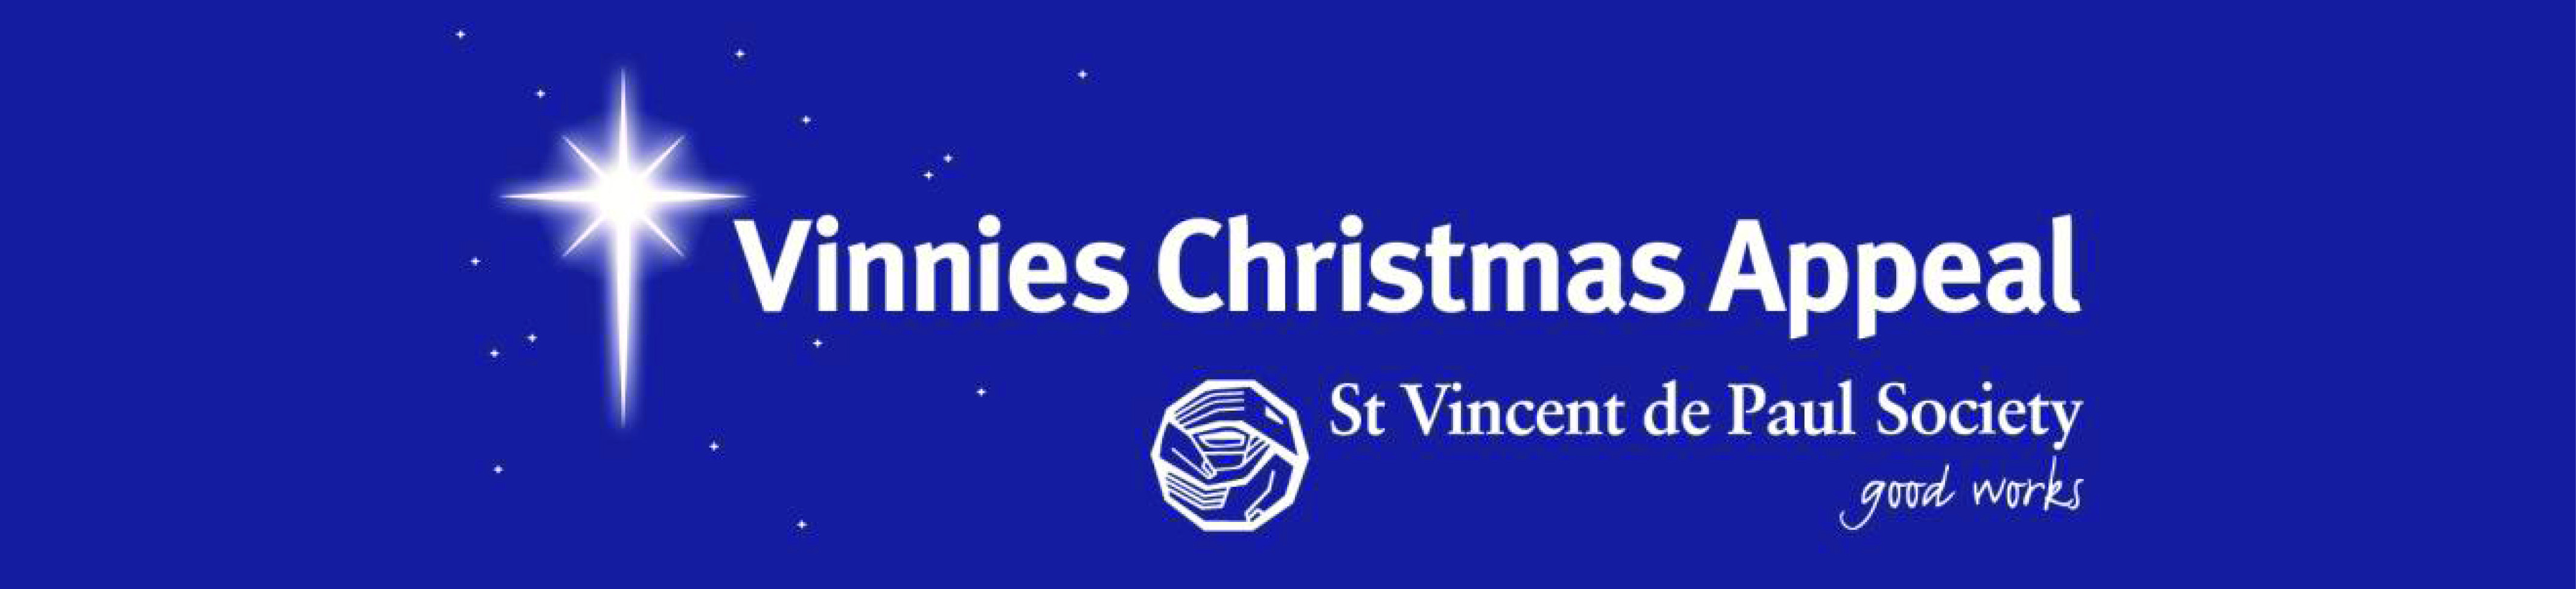 Vinnies Christmas Gift Appeal - QLD